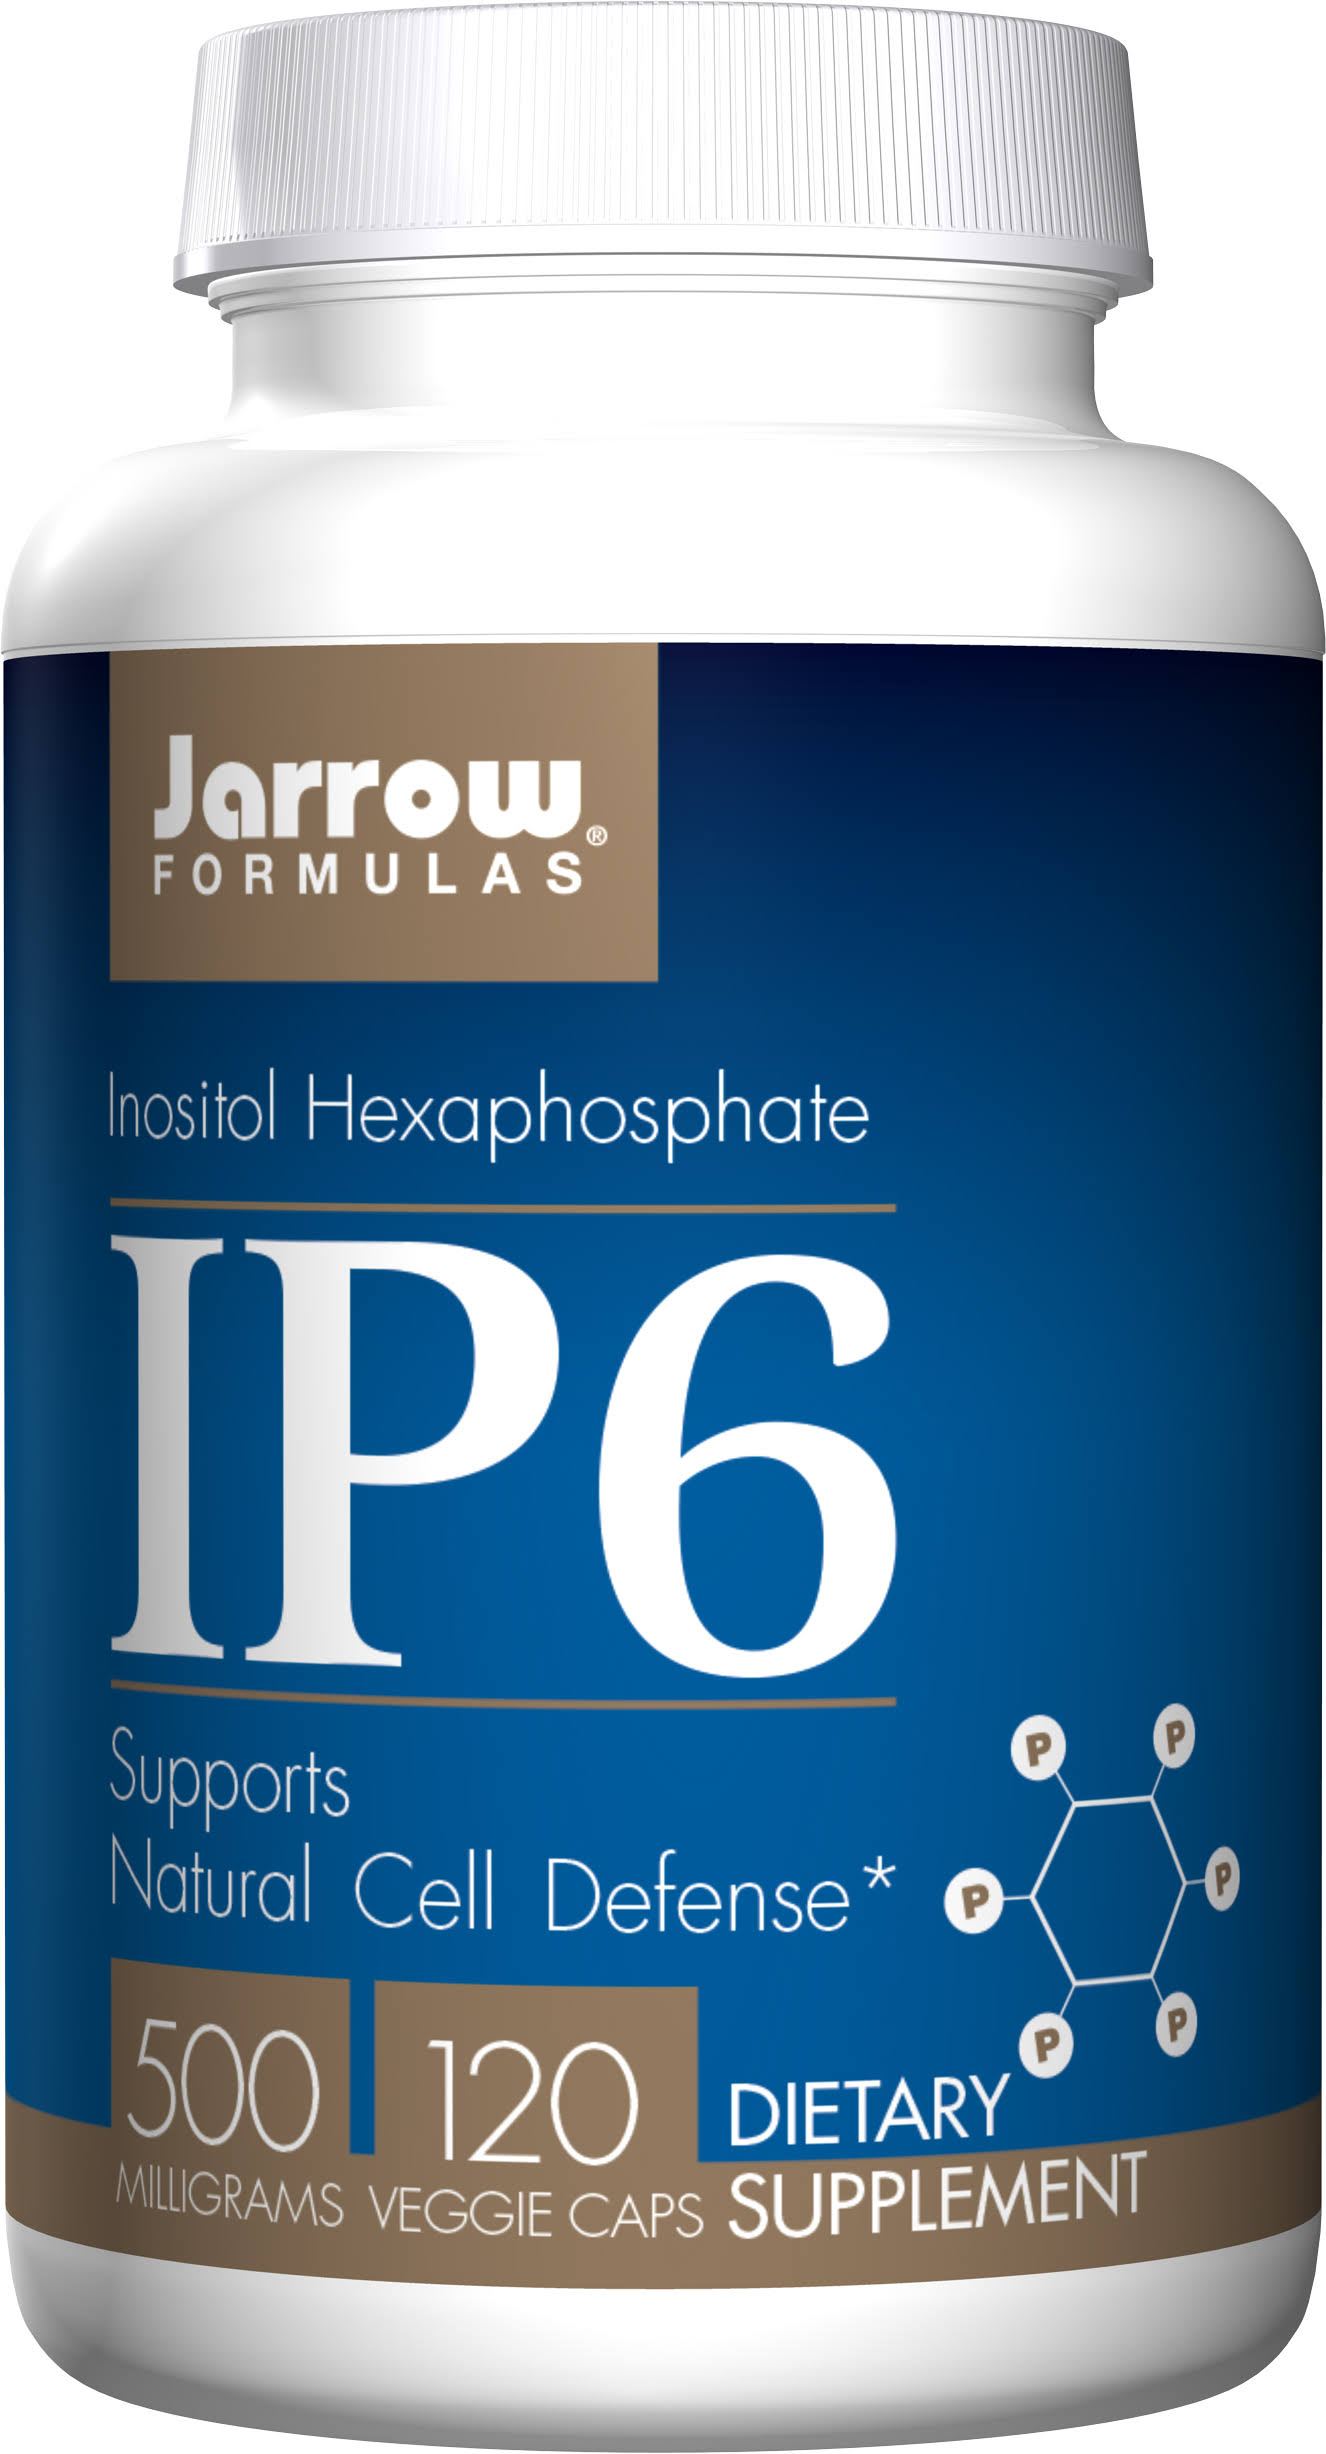 Jarrow Formulas IP6 Inositol Hexophosphate Supplement - 120 Capsules